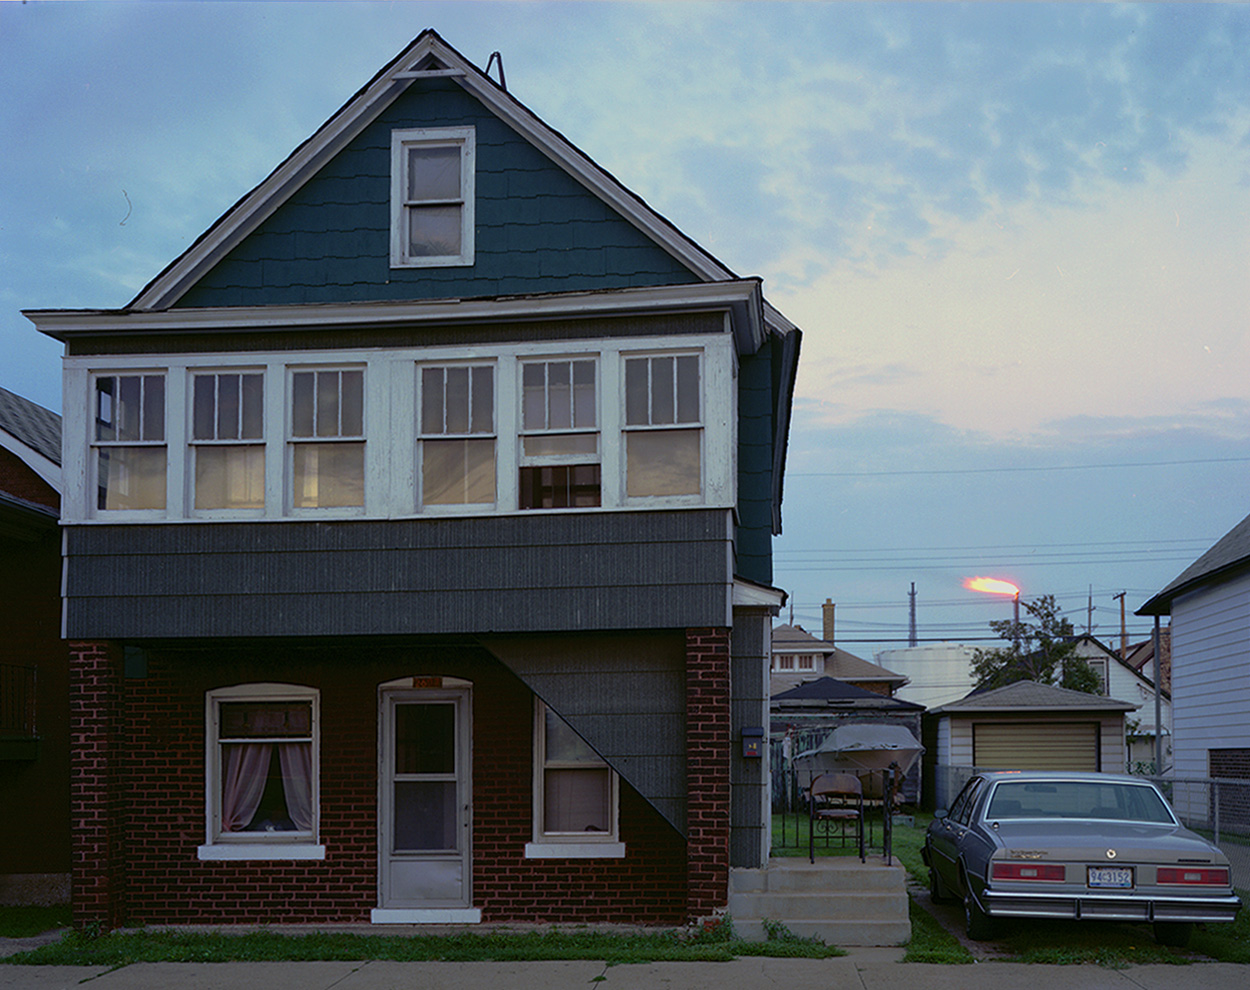 House At Twilight, Whiting IN 1987.jpg